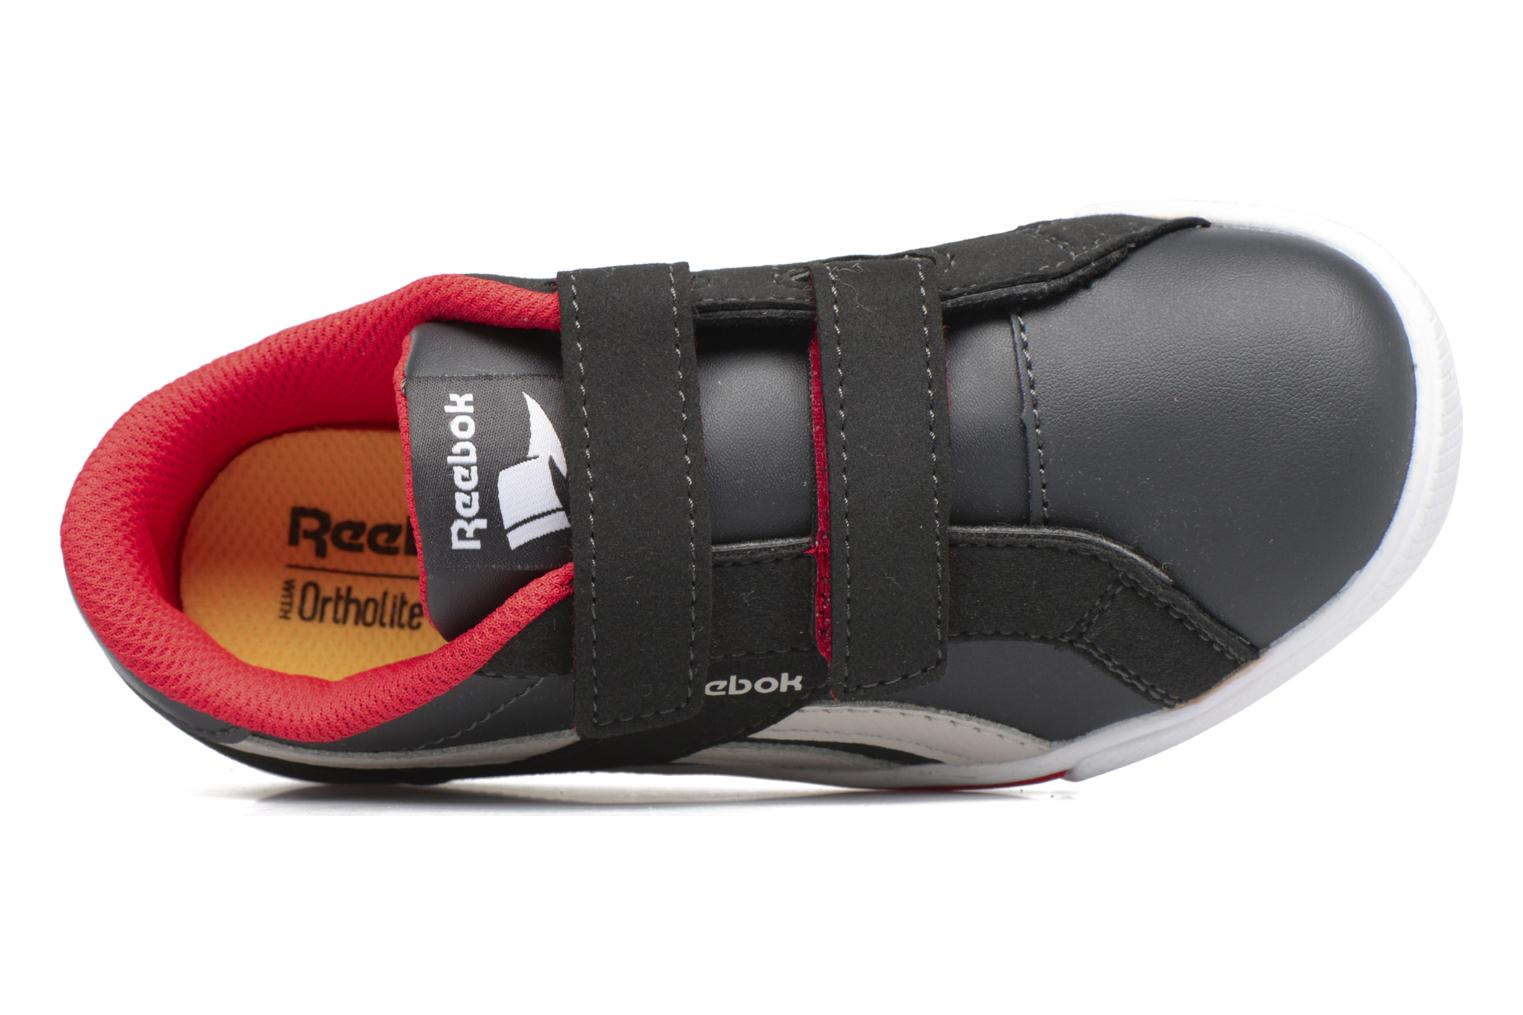 Reebok Royal Comp 2Ls Alt Coal/Sand Stone/Dayglow Red